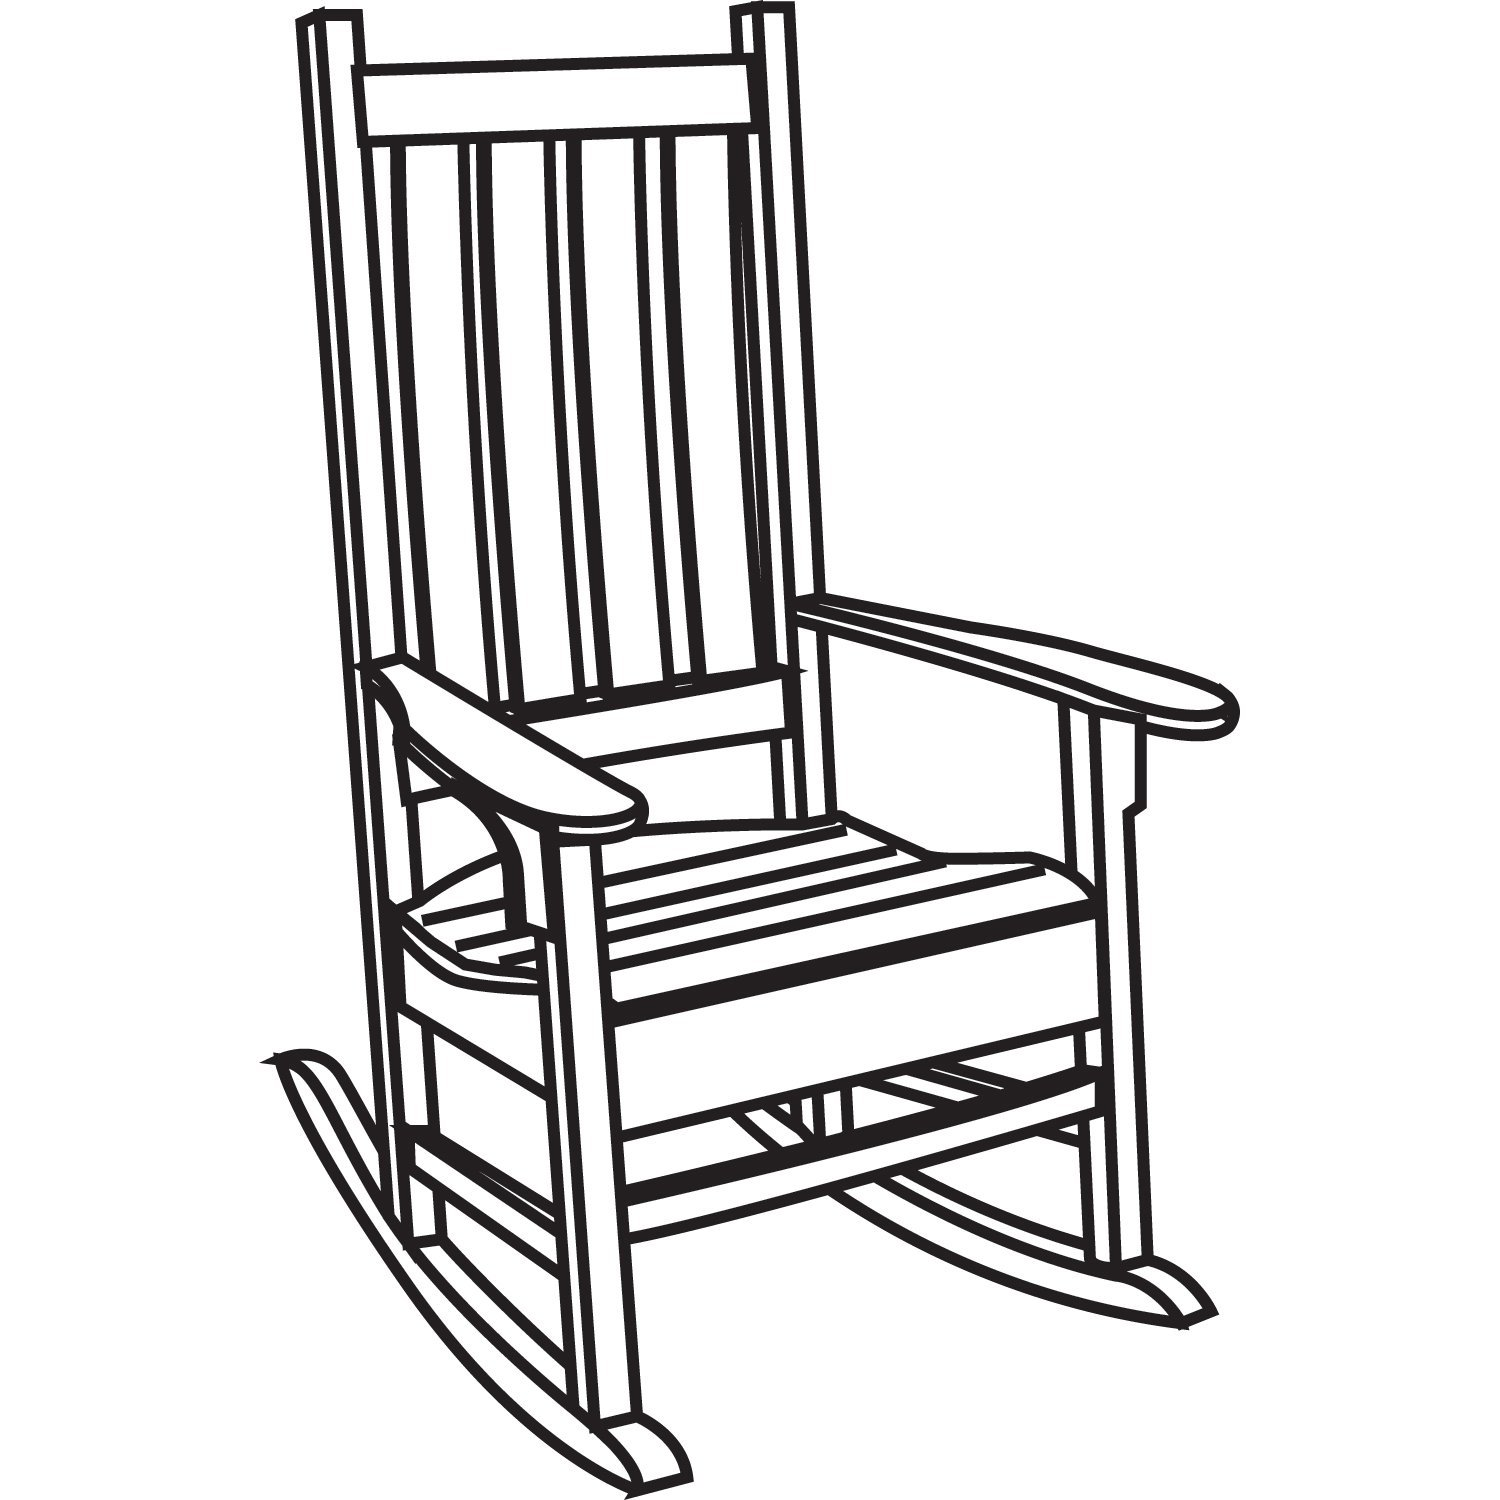 Free Rocking Chair Plans How To Draw A Rocking Chair Plans Diy Free Download Cedar Trellis